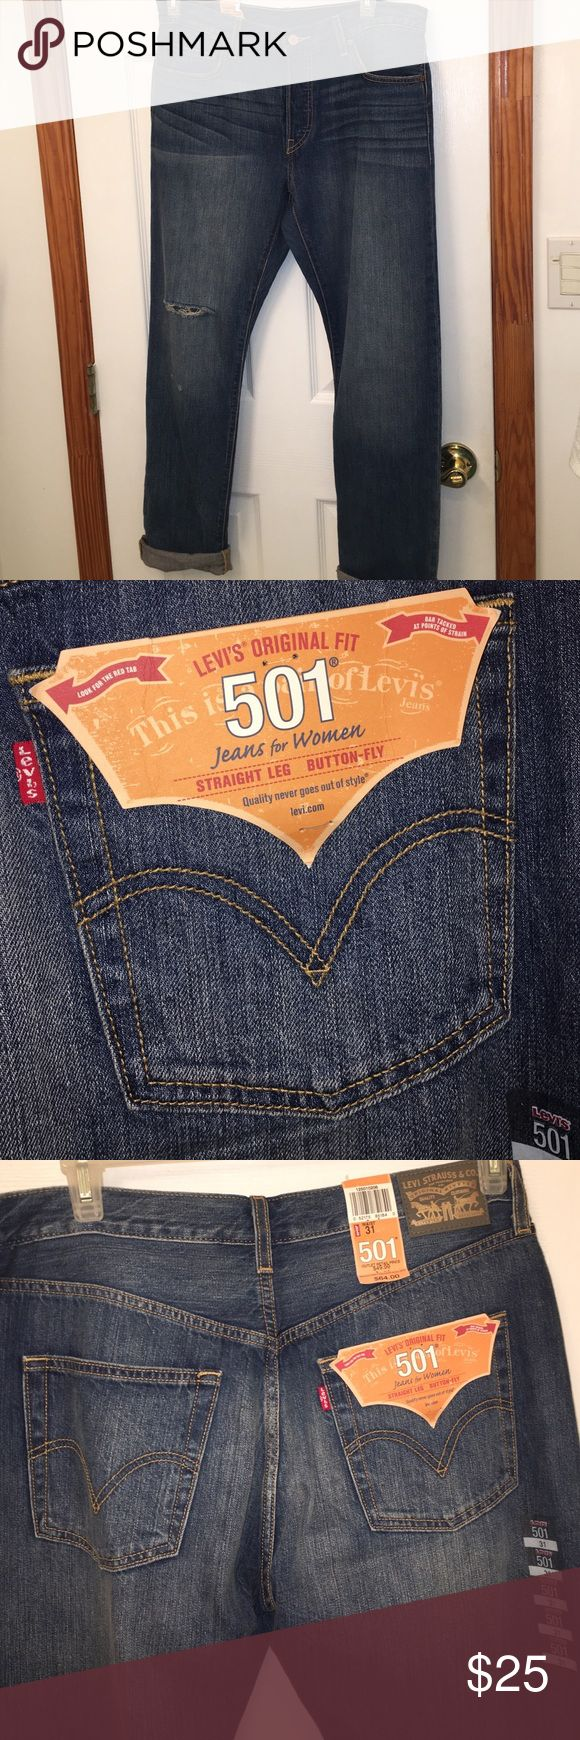 Levi Strauss: Authentic Women's Straight Jean Authentic Levi Strauss 501's–purchased at the Levi Outlet store. 31 Waist. Originally $64.00, BRAND NEW. Has one distressed hole on the right leg for design. 4 inner button up instead of zipper! Can be worn casual or dressed up. Levi's Jeans Straight Leg